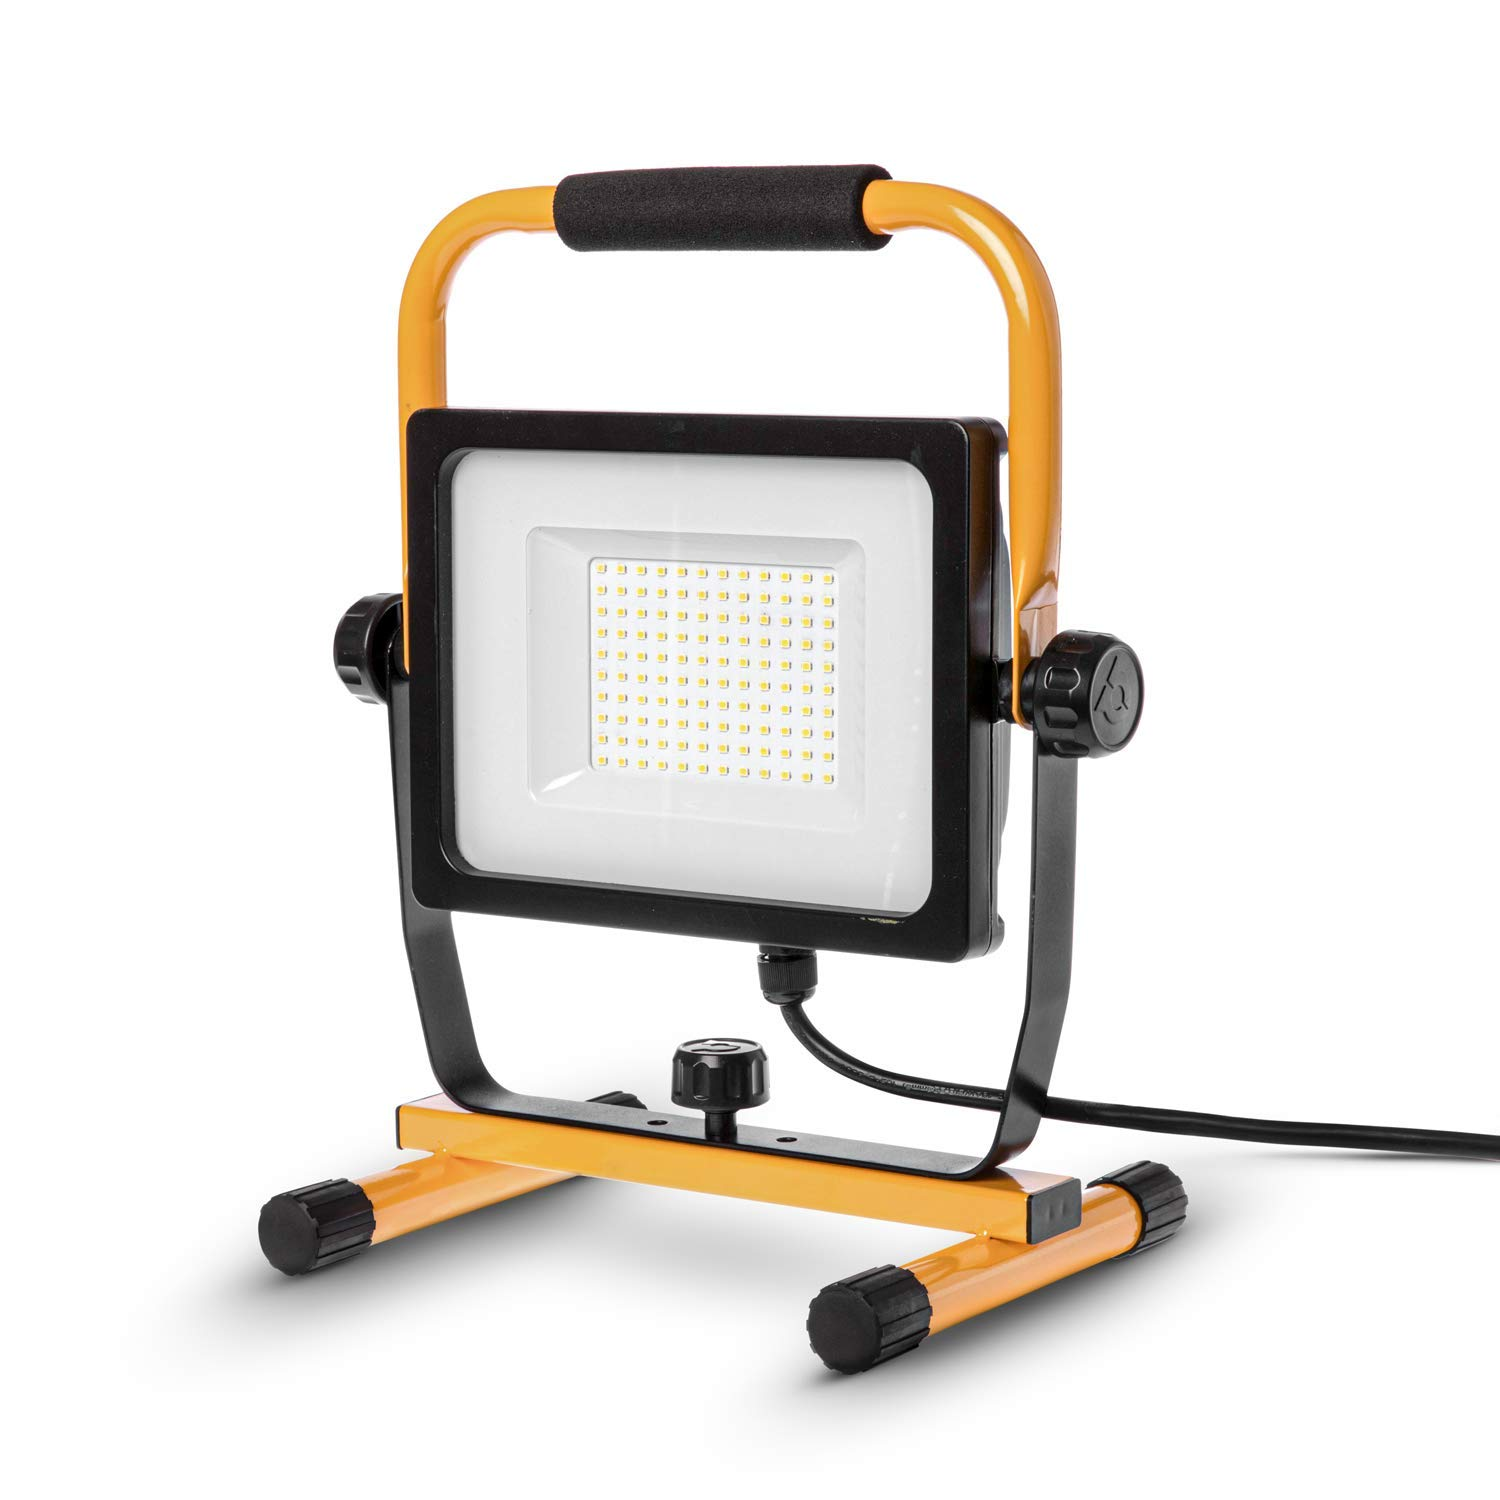 Home Zone Security LED Work Light - 7,000 Lumen Corded Work Lamp with Attachable Stand, 70W ETL Certified